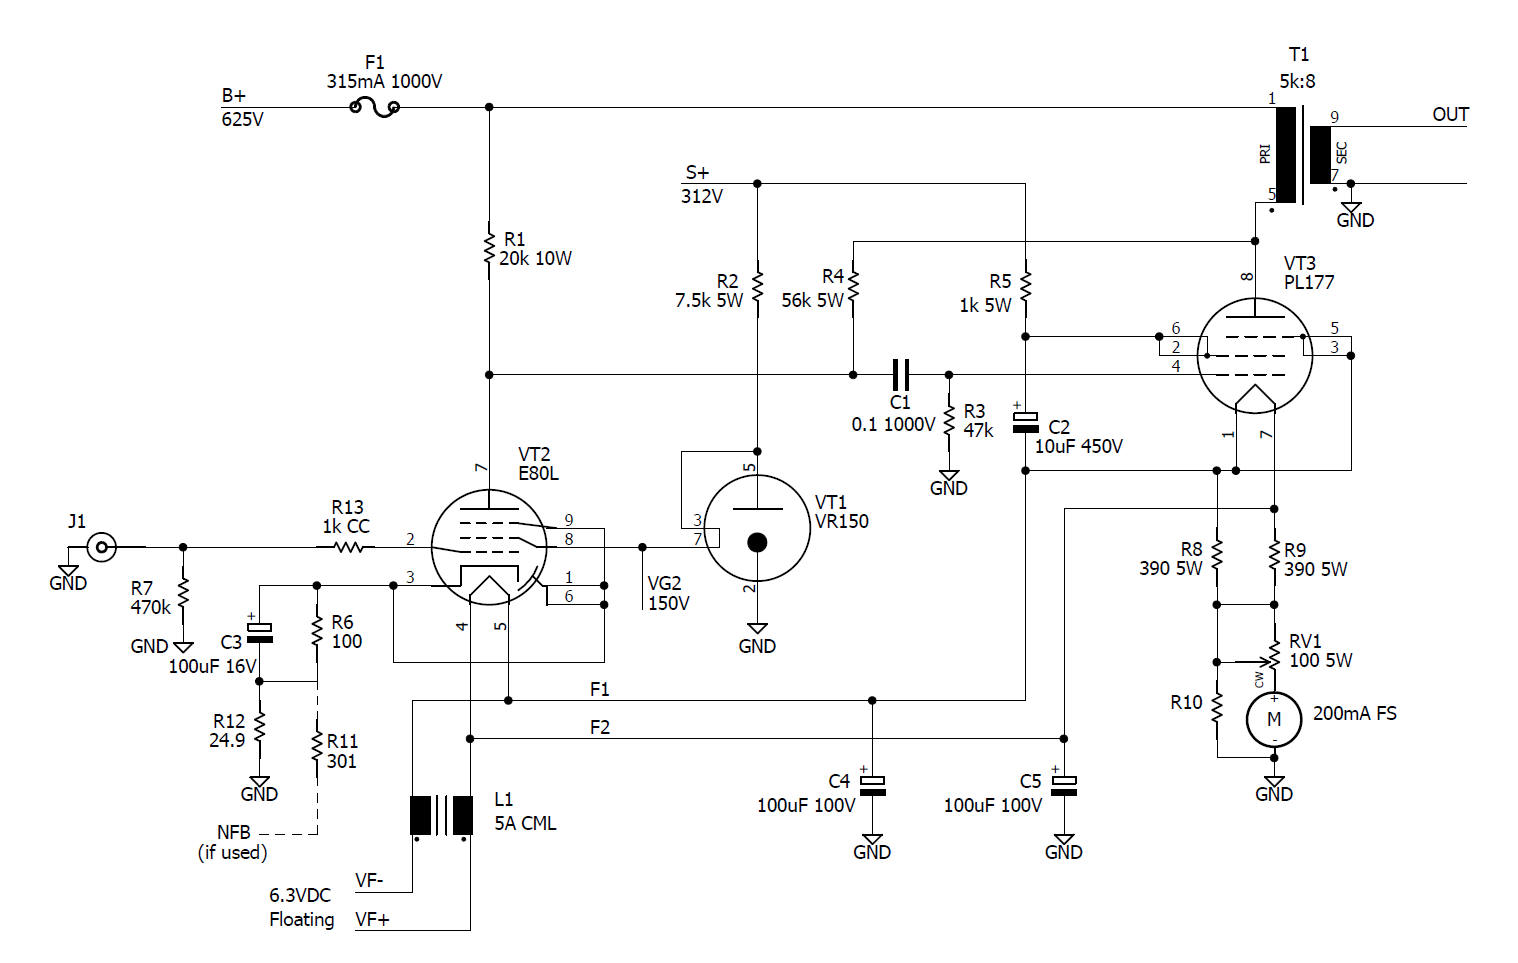 Pl177 Amplifer Am Transmitter Circuit Diagram Very Simple A High Gm Pentode E80l Cap Coupled To The Pl 177 With Cathode Bias In Class A1 This Is One Of Few Tubes That Works